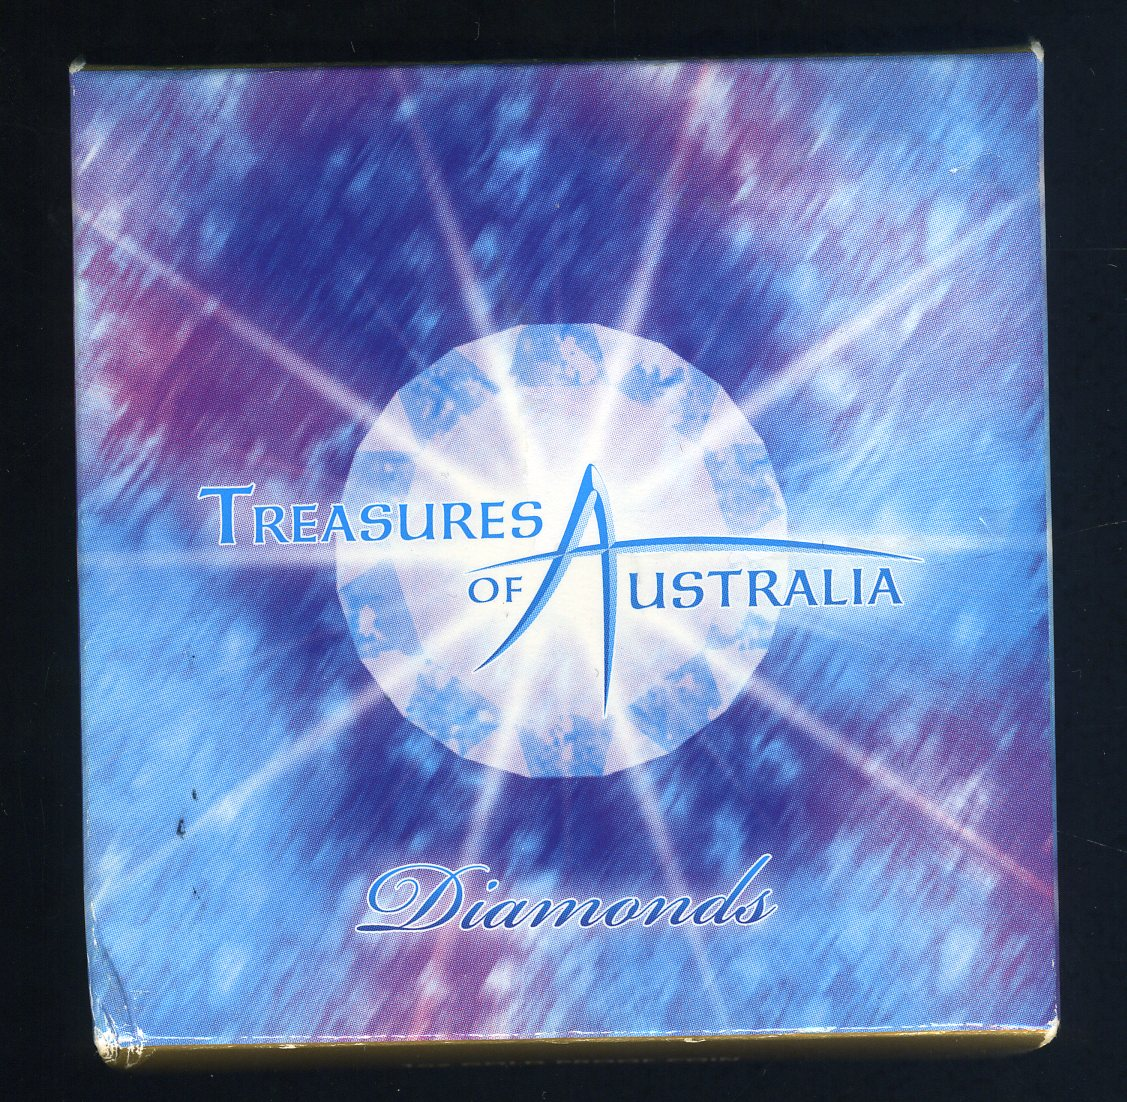 Thumbnail for 2009 Treasures of Australia 1oz Silver Locket Coin - Diamonds